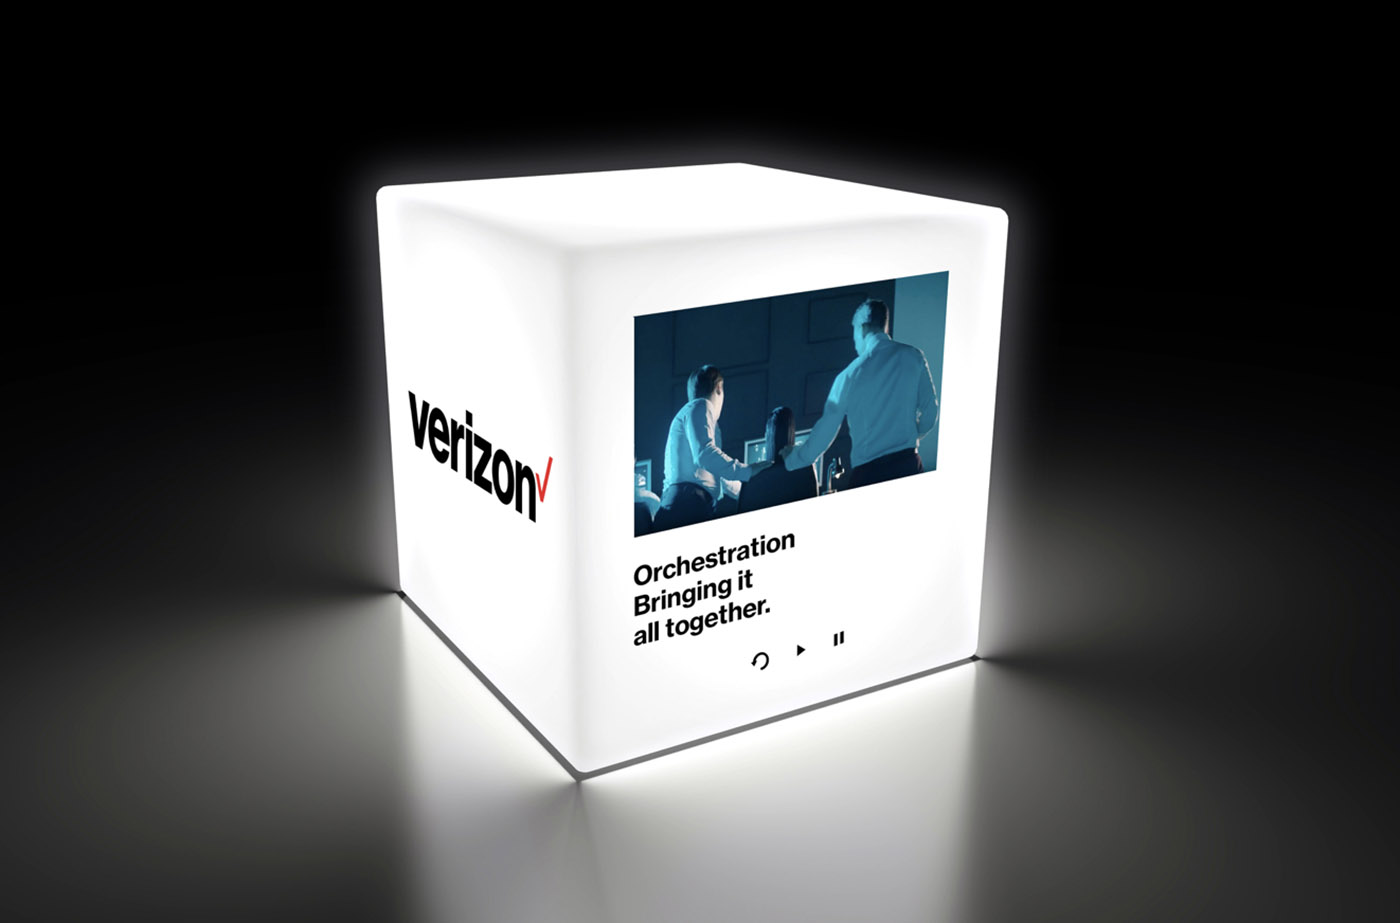 Verizon cube lit up on black background